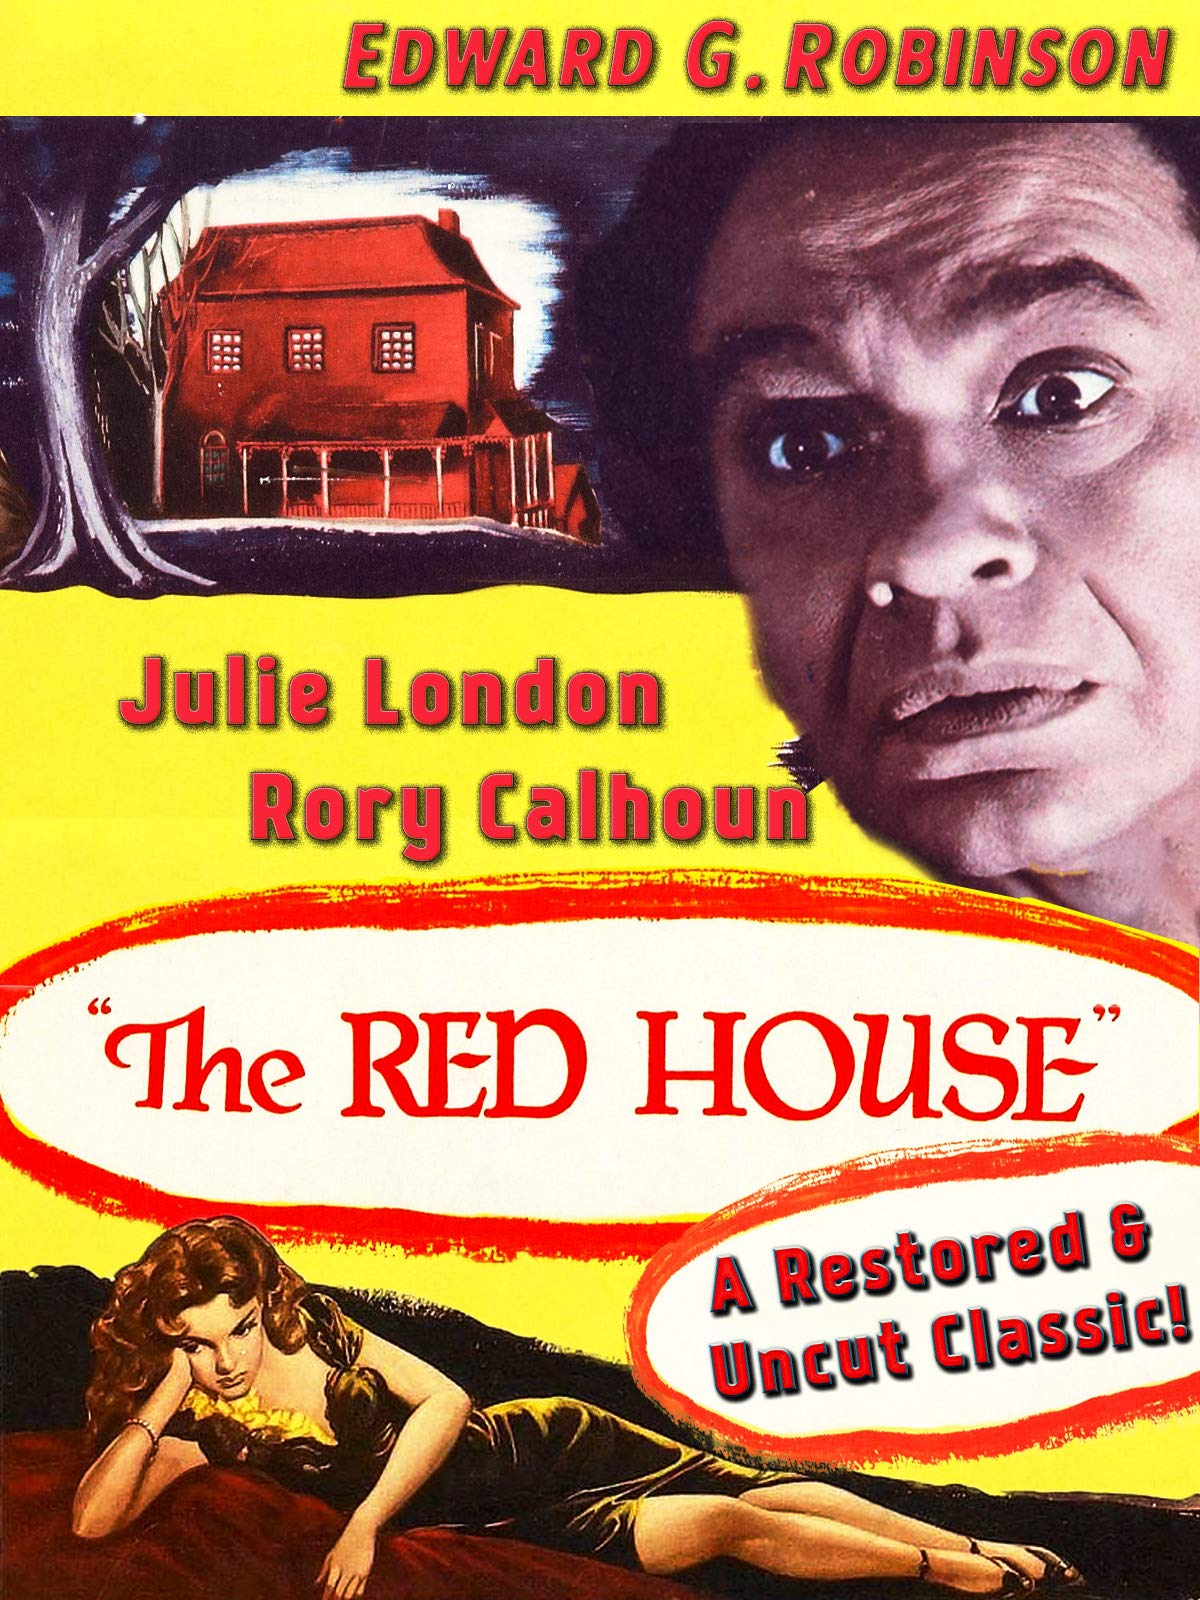 The Red House - Edward G. Robinson, Julie London, Rory Calhoun, A Restored & Uncut Classic!